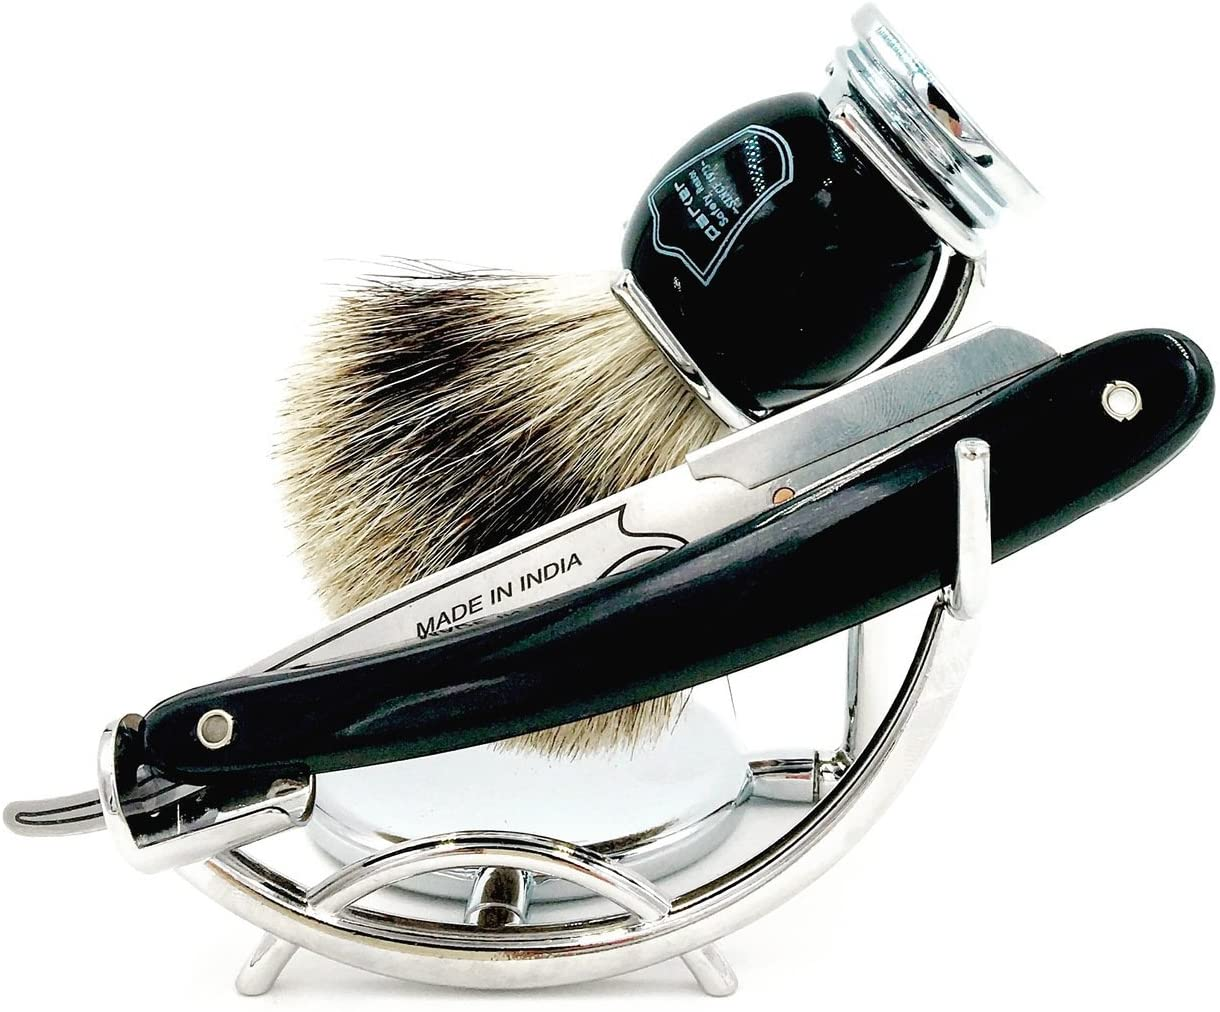 Parkers SRB Replaceable Blade Straight Edge Barber Razor Shave Set - Includes Parkers 100% Pure Badger Brush, Low Profile Chrome Shave Stand, Parker SRB Shavette Razor and 100 Razor Blades